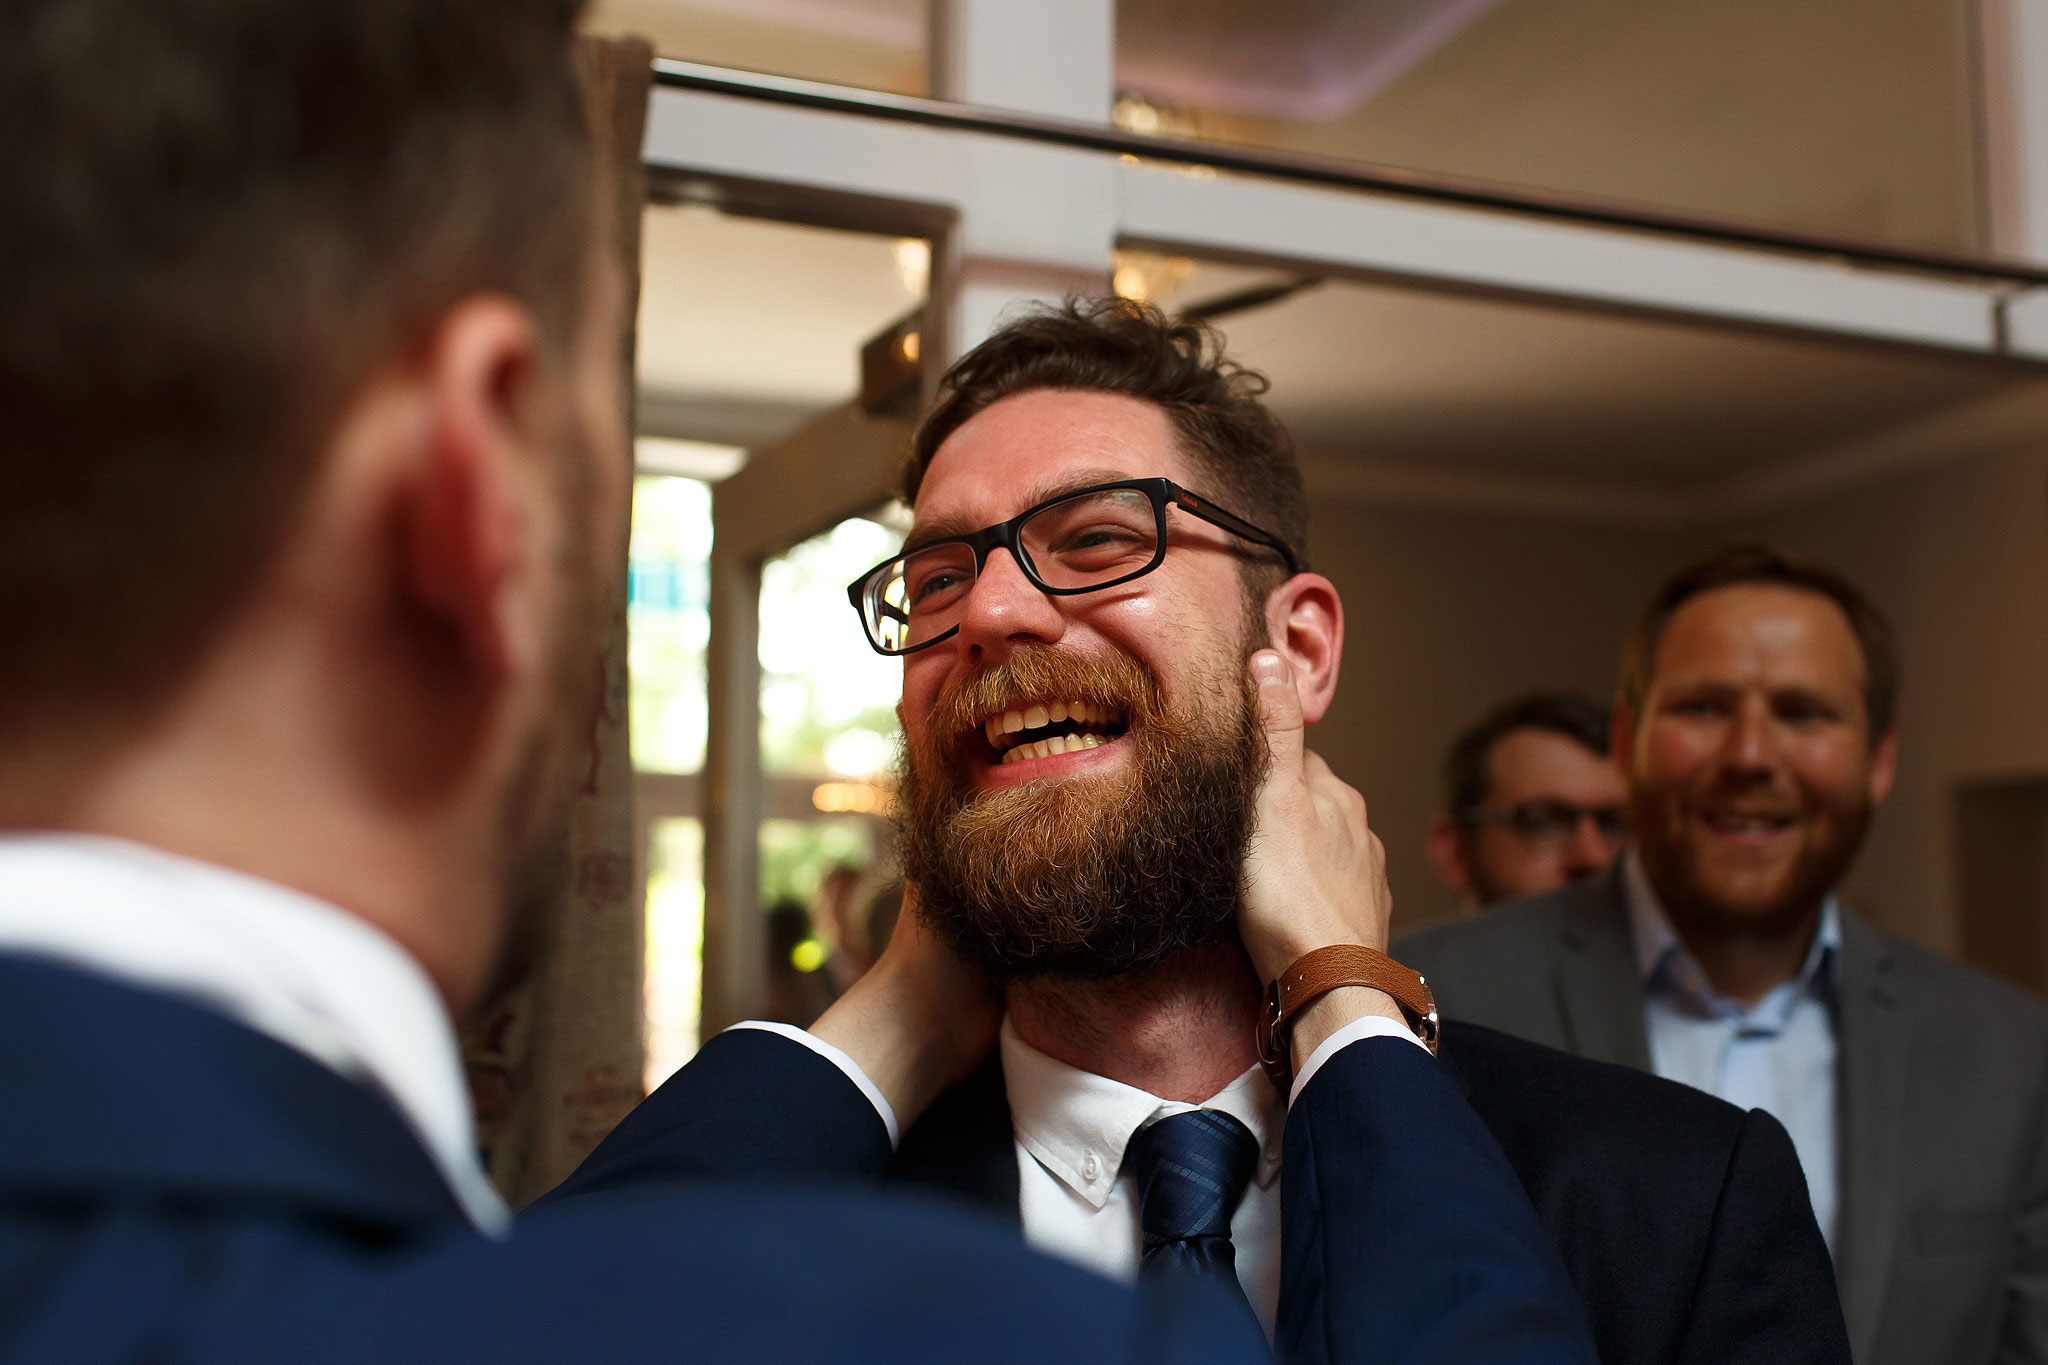 Great wedding guest expression - The Villa at Wrea Green Wedding Photography - Toni Darcy Photography